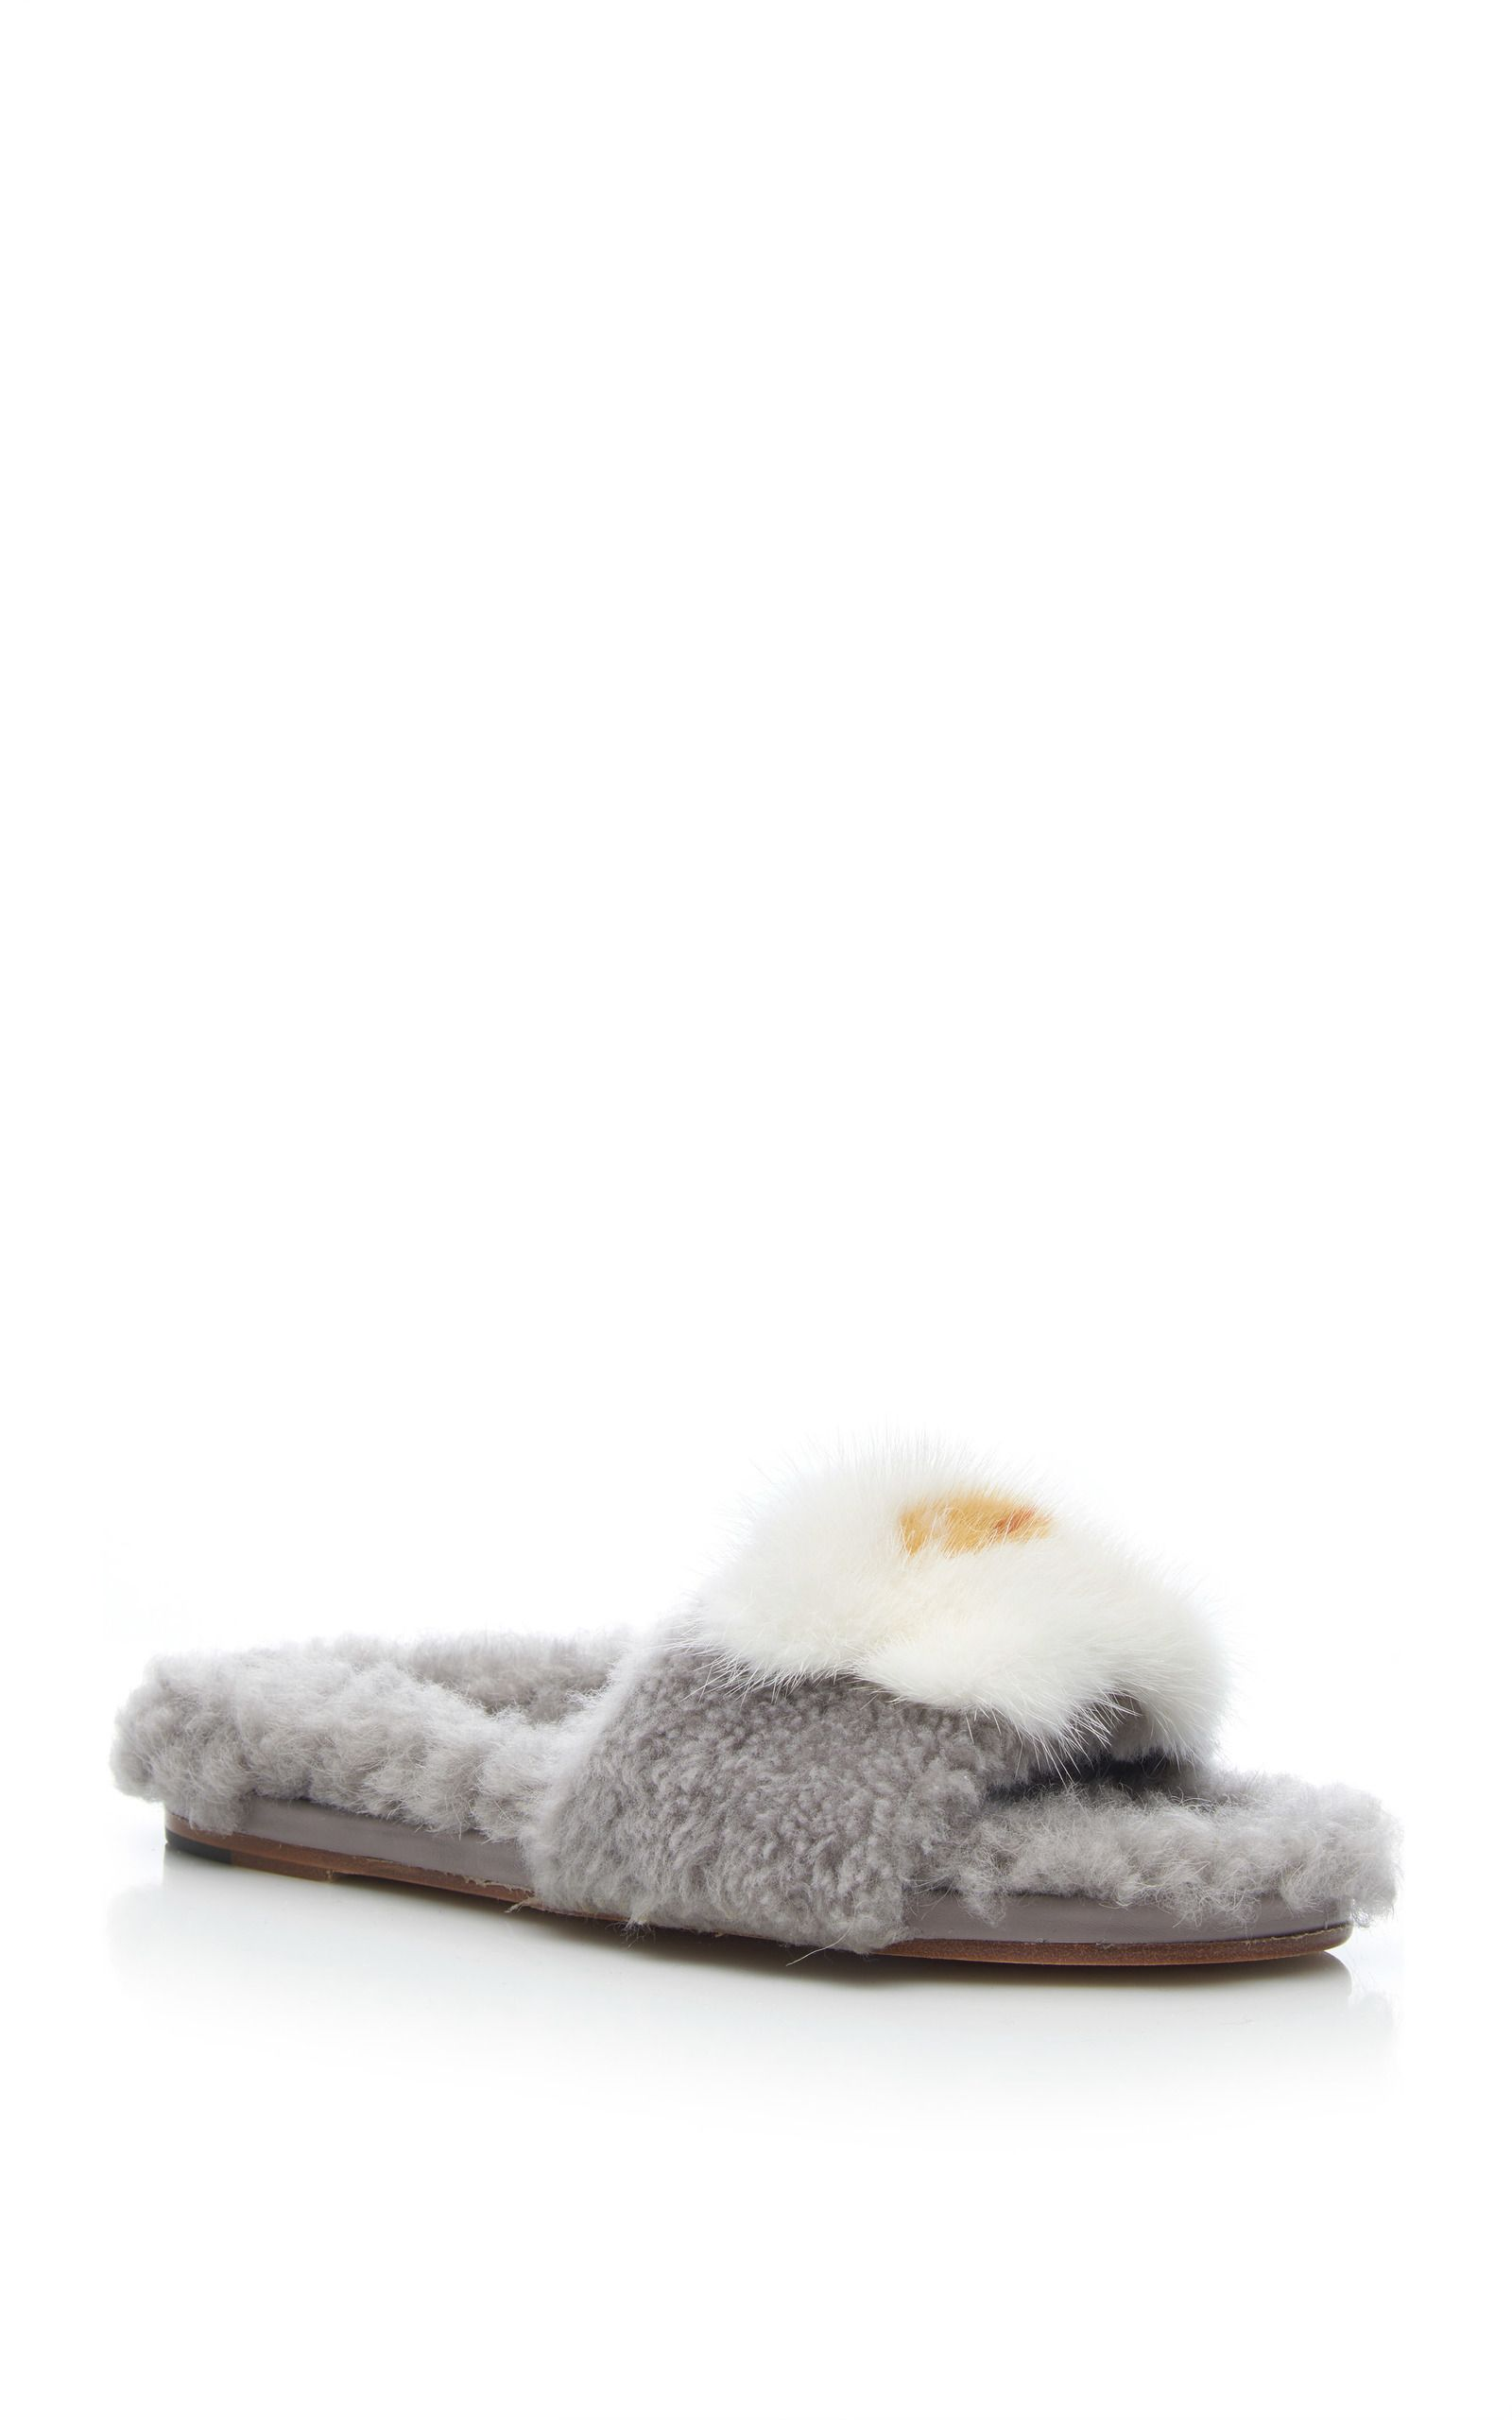 Black Shearling Egg Slides Anya Hindmarch uO6DO8